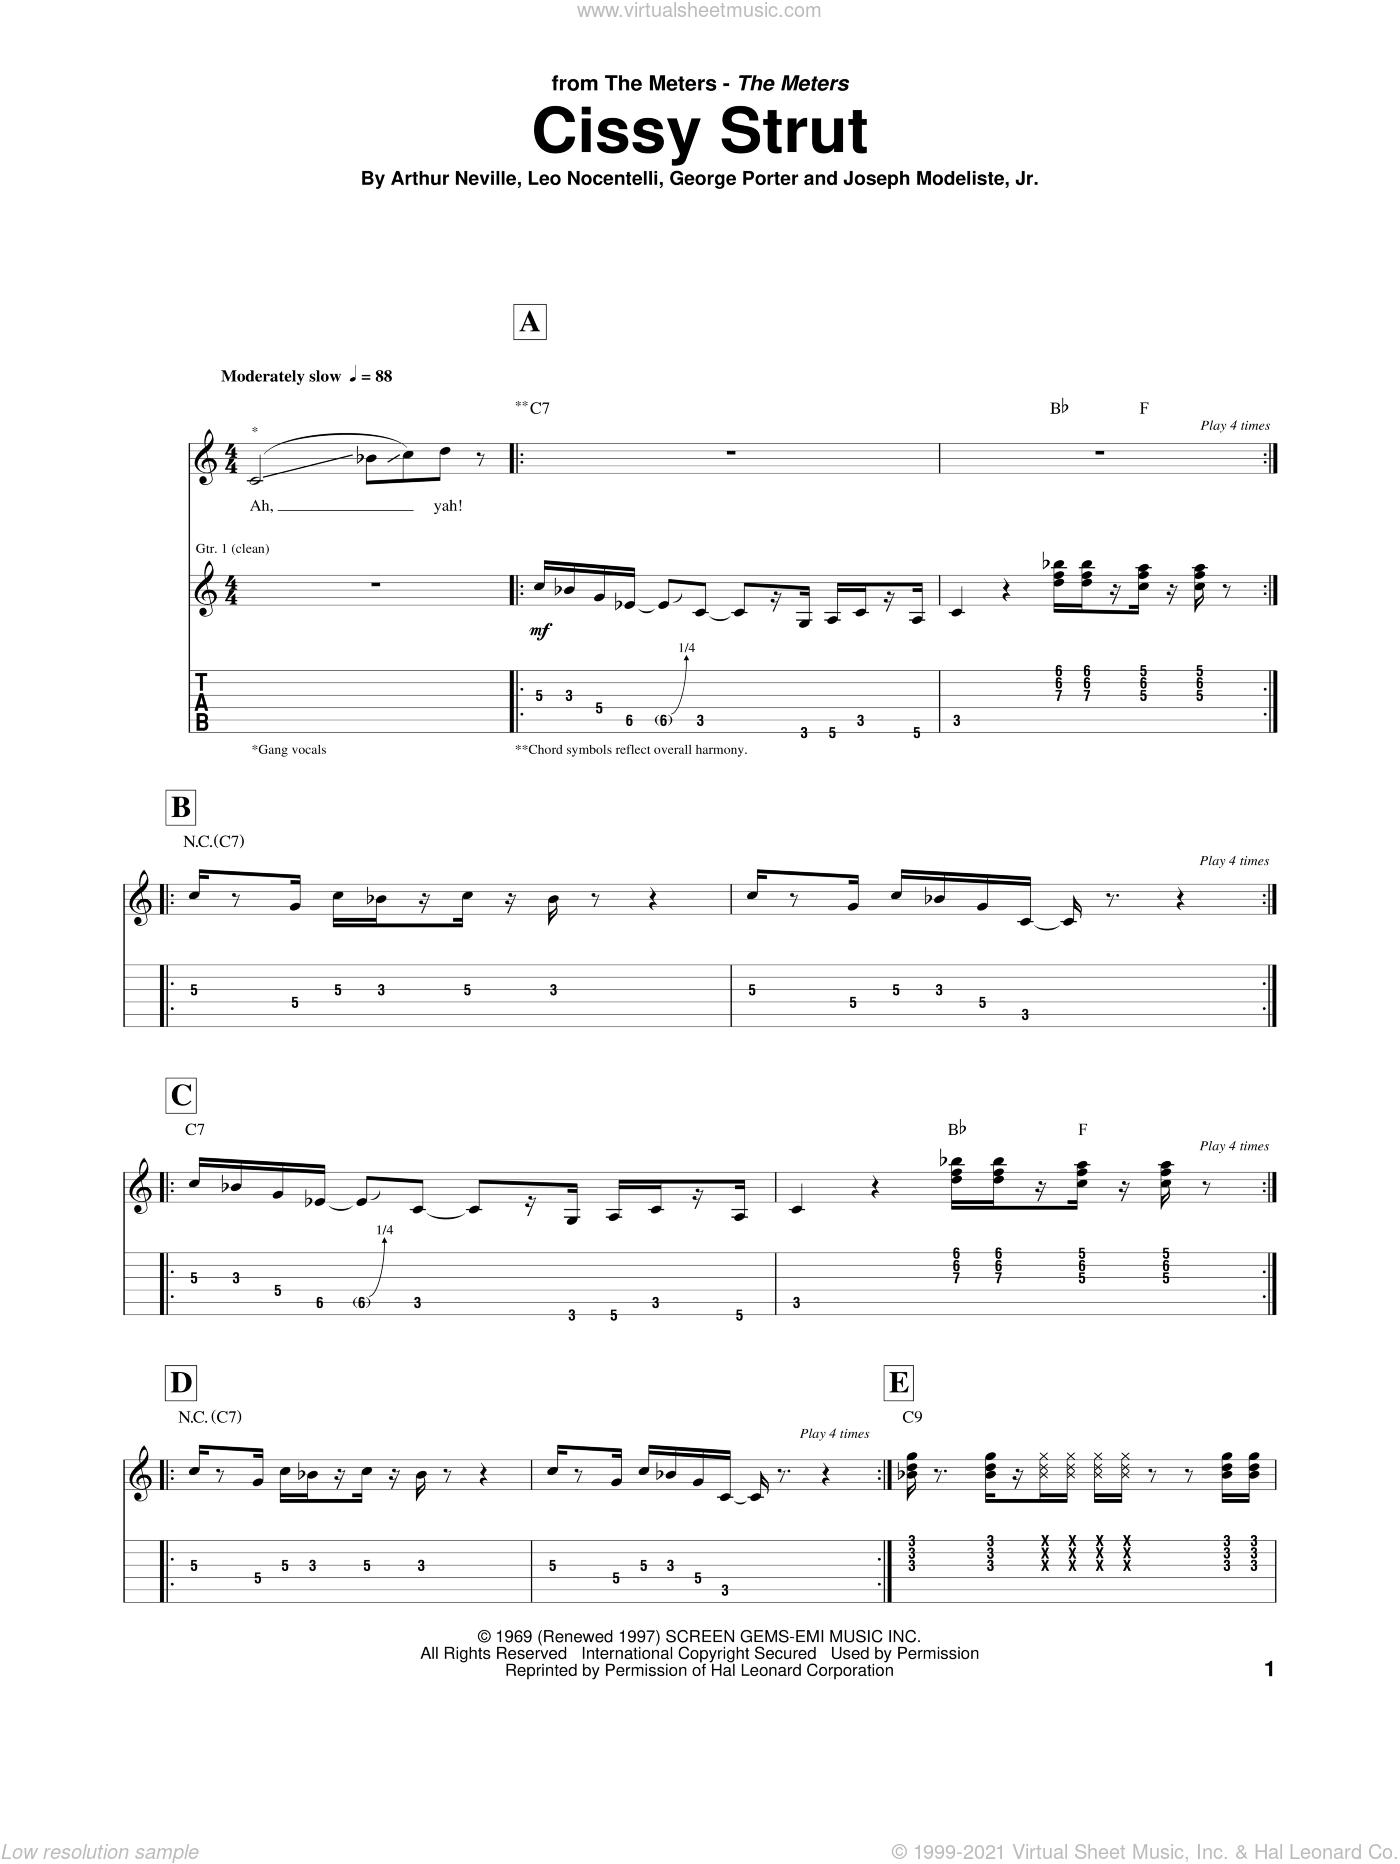 Cissy Strut sheet music for guitar (tablature) by Leo Nocentelli